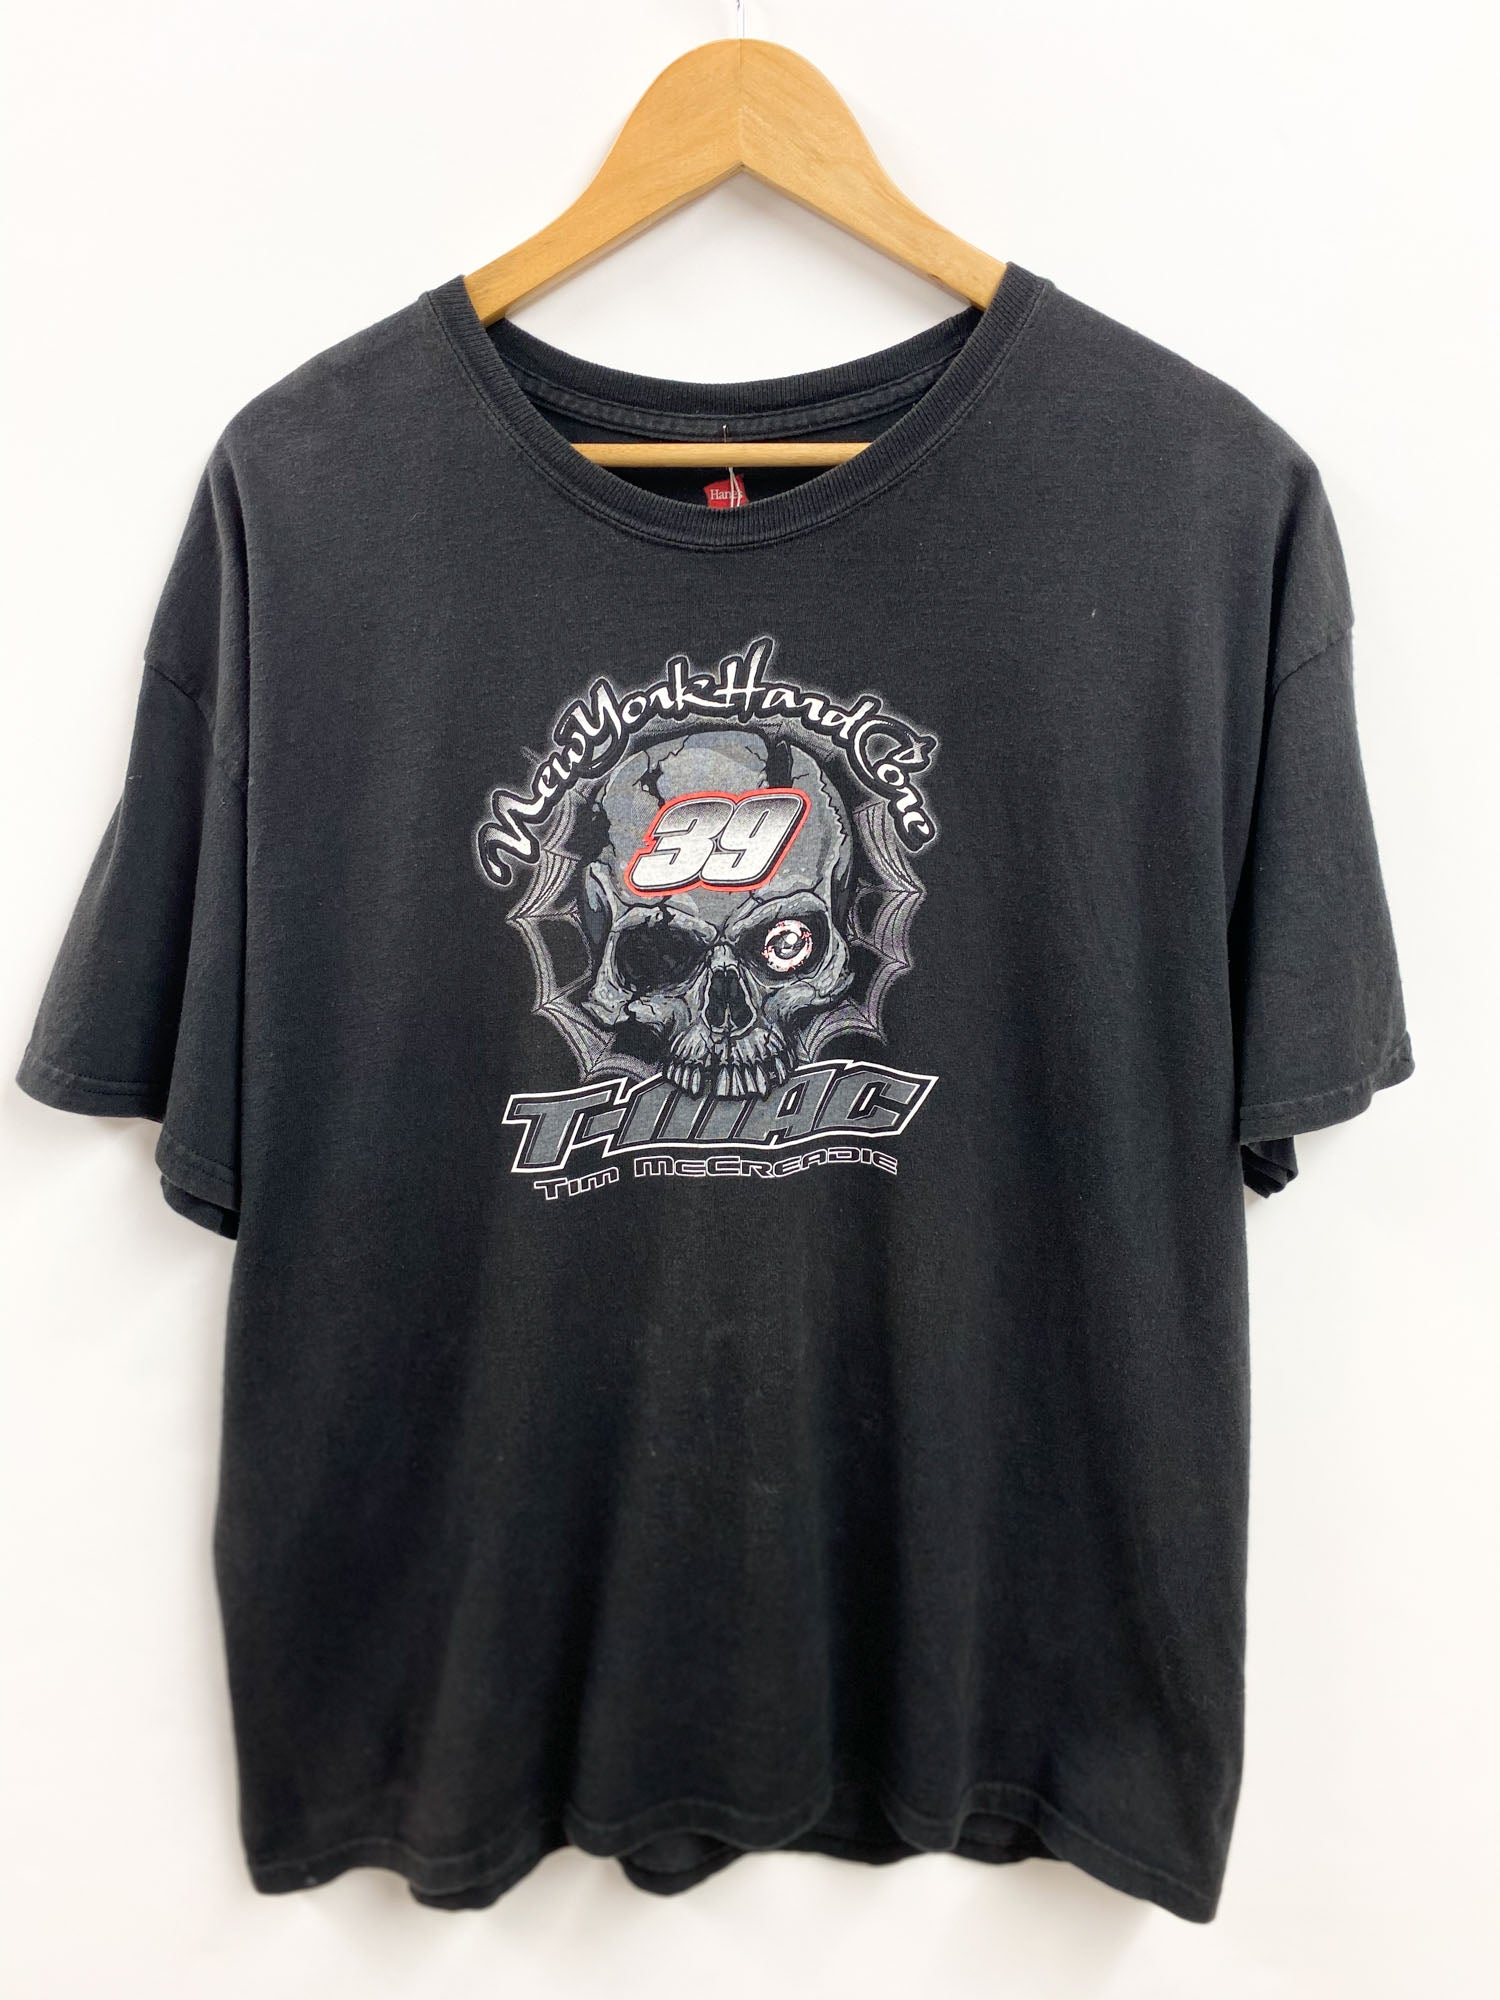 Vintage New York Hardcore T-MAC Racing Tee